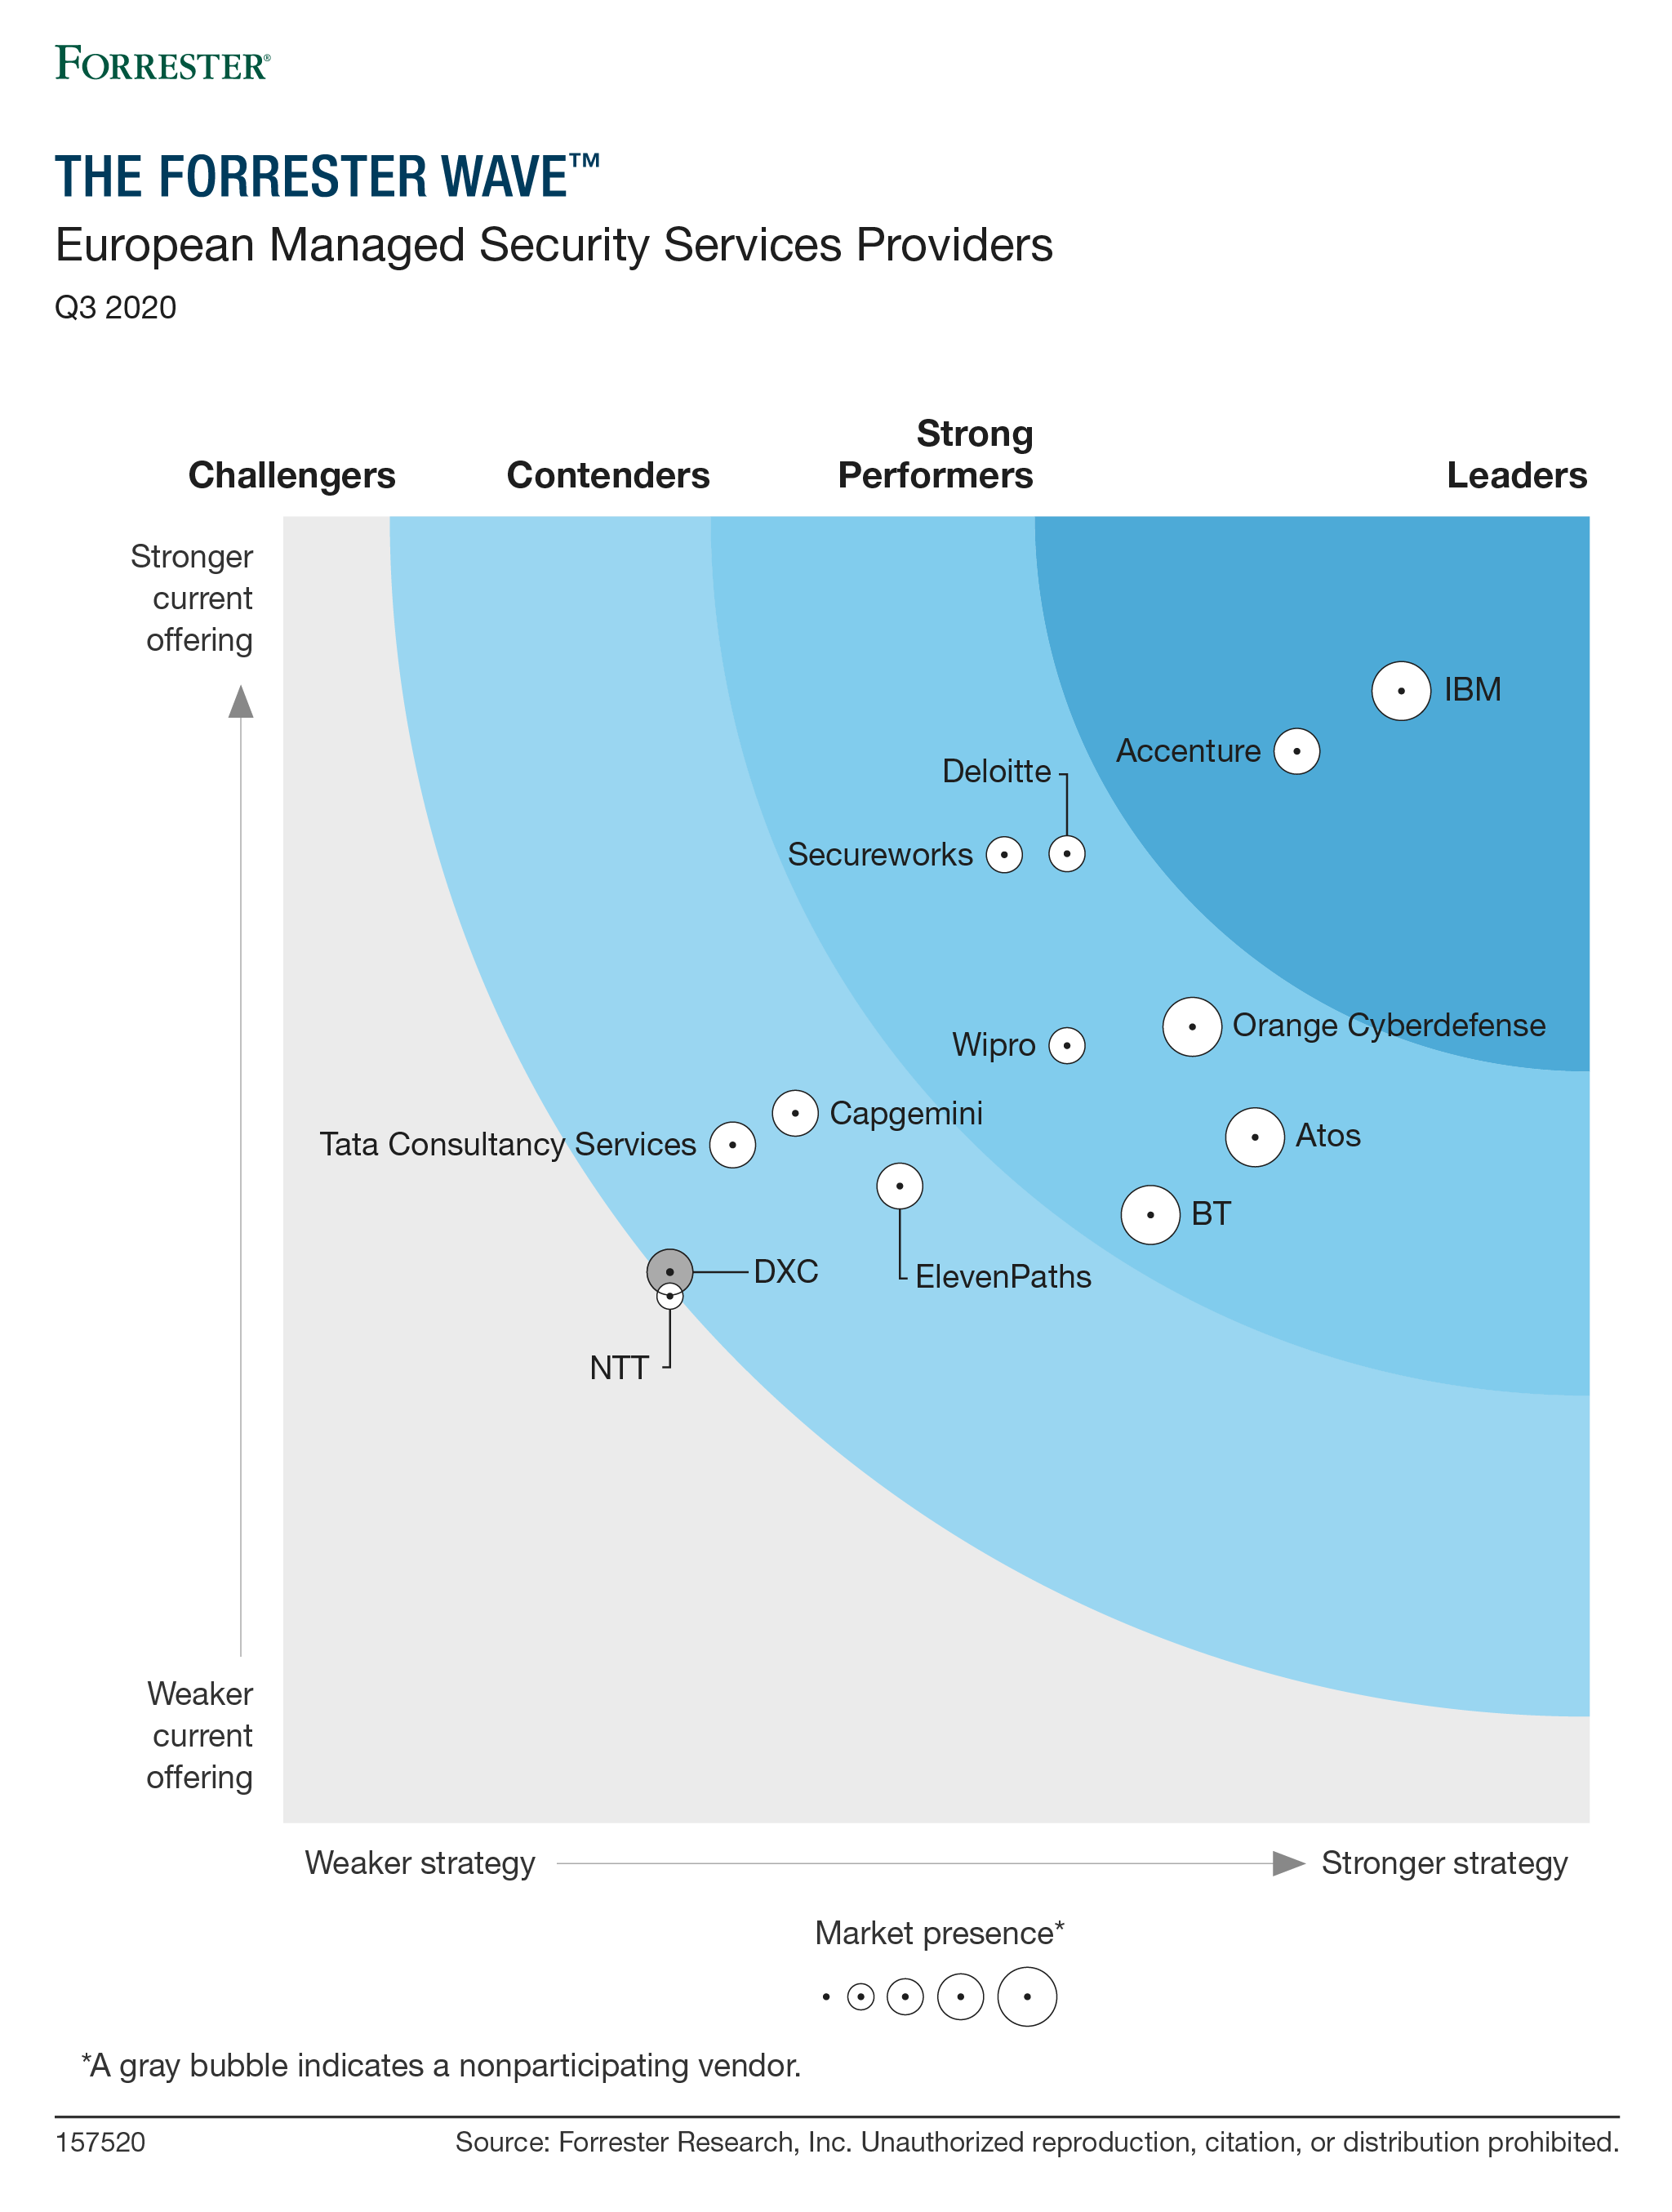 The Forrester Wave™: European Managed Security Services Providers, Q3 2020